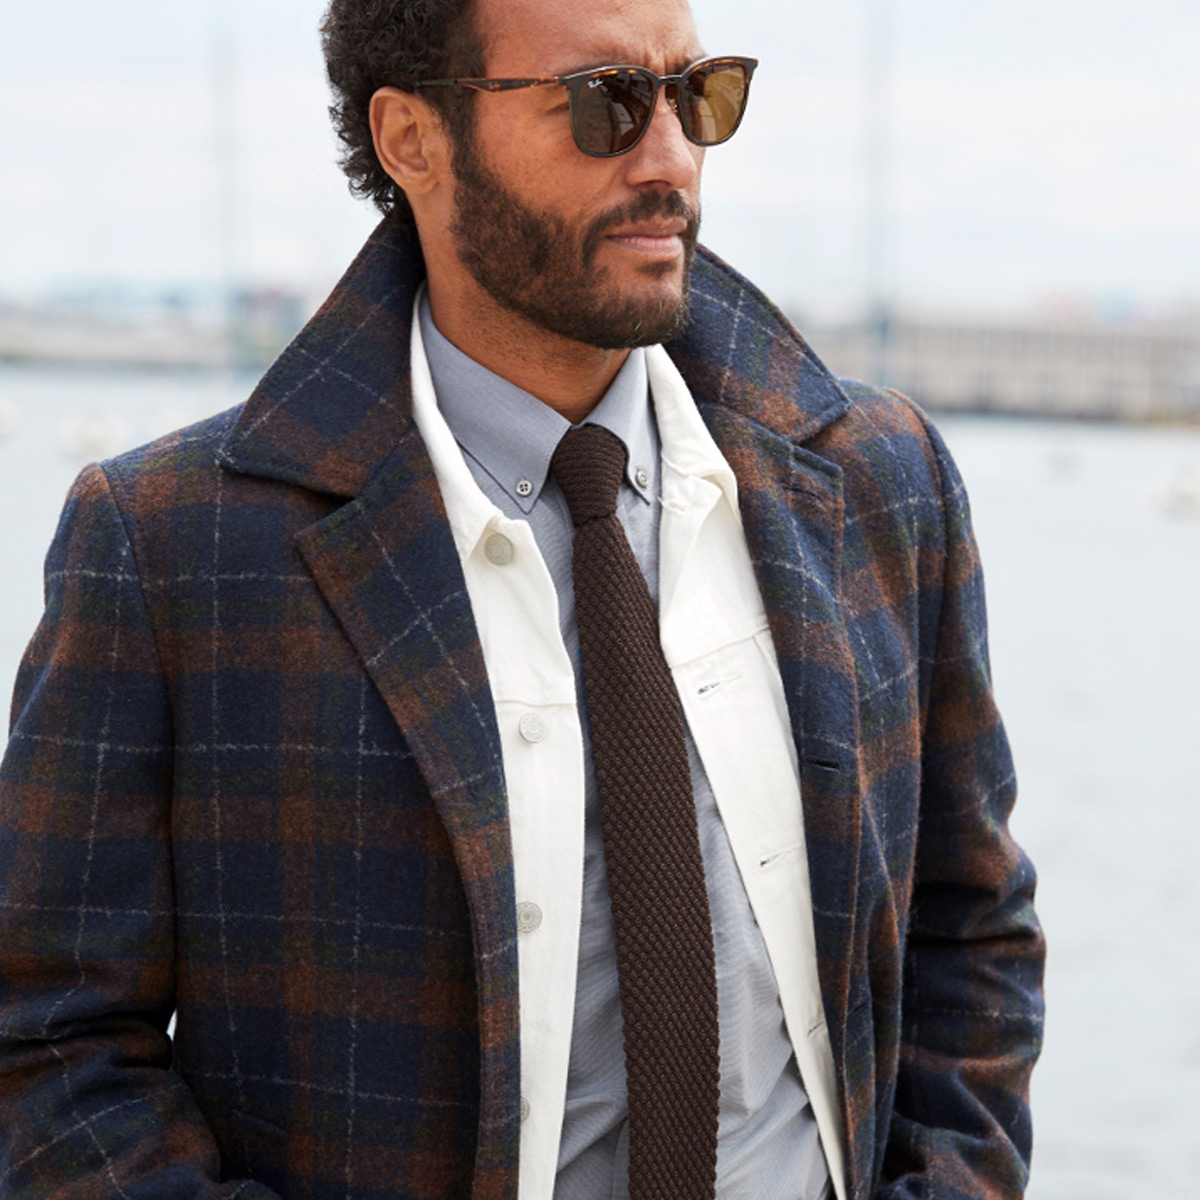 Male model standing outdoors wearing a jacket featuring oversized plaid.